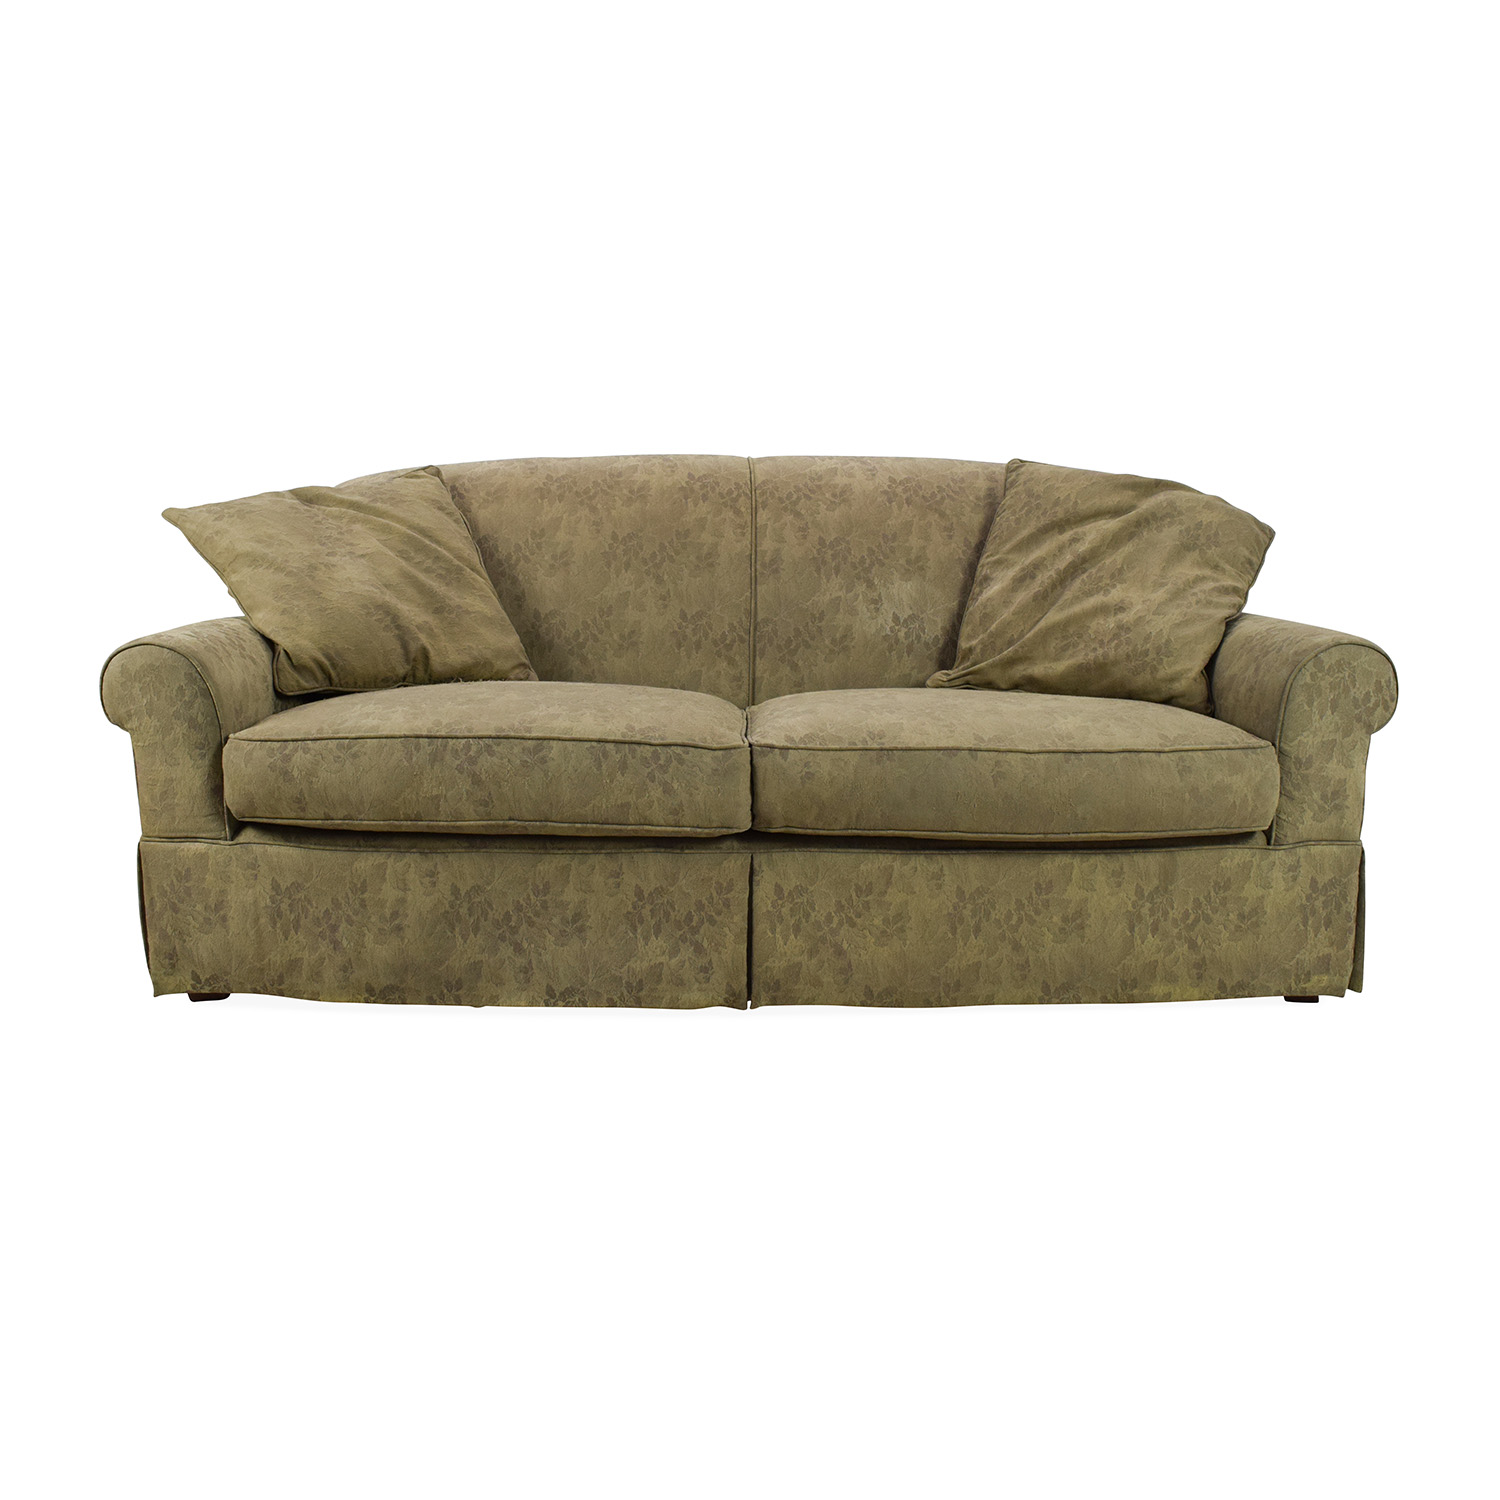 76% OFF Leather and Suede Three Seat Sofa Sofas